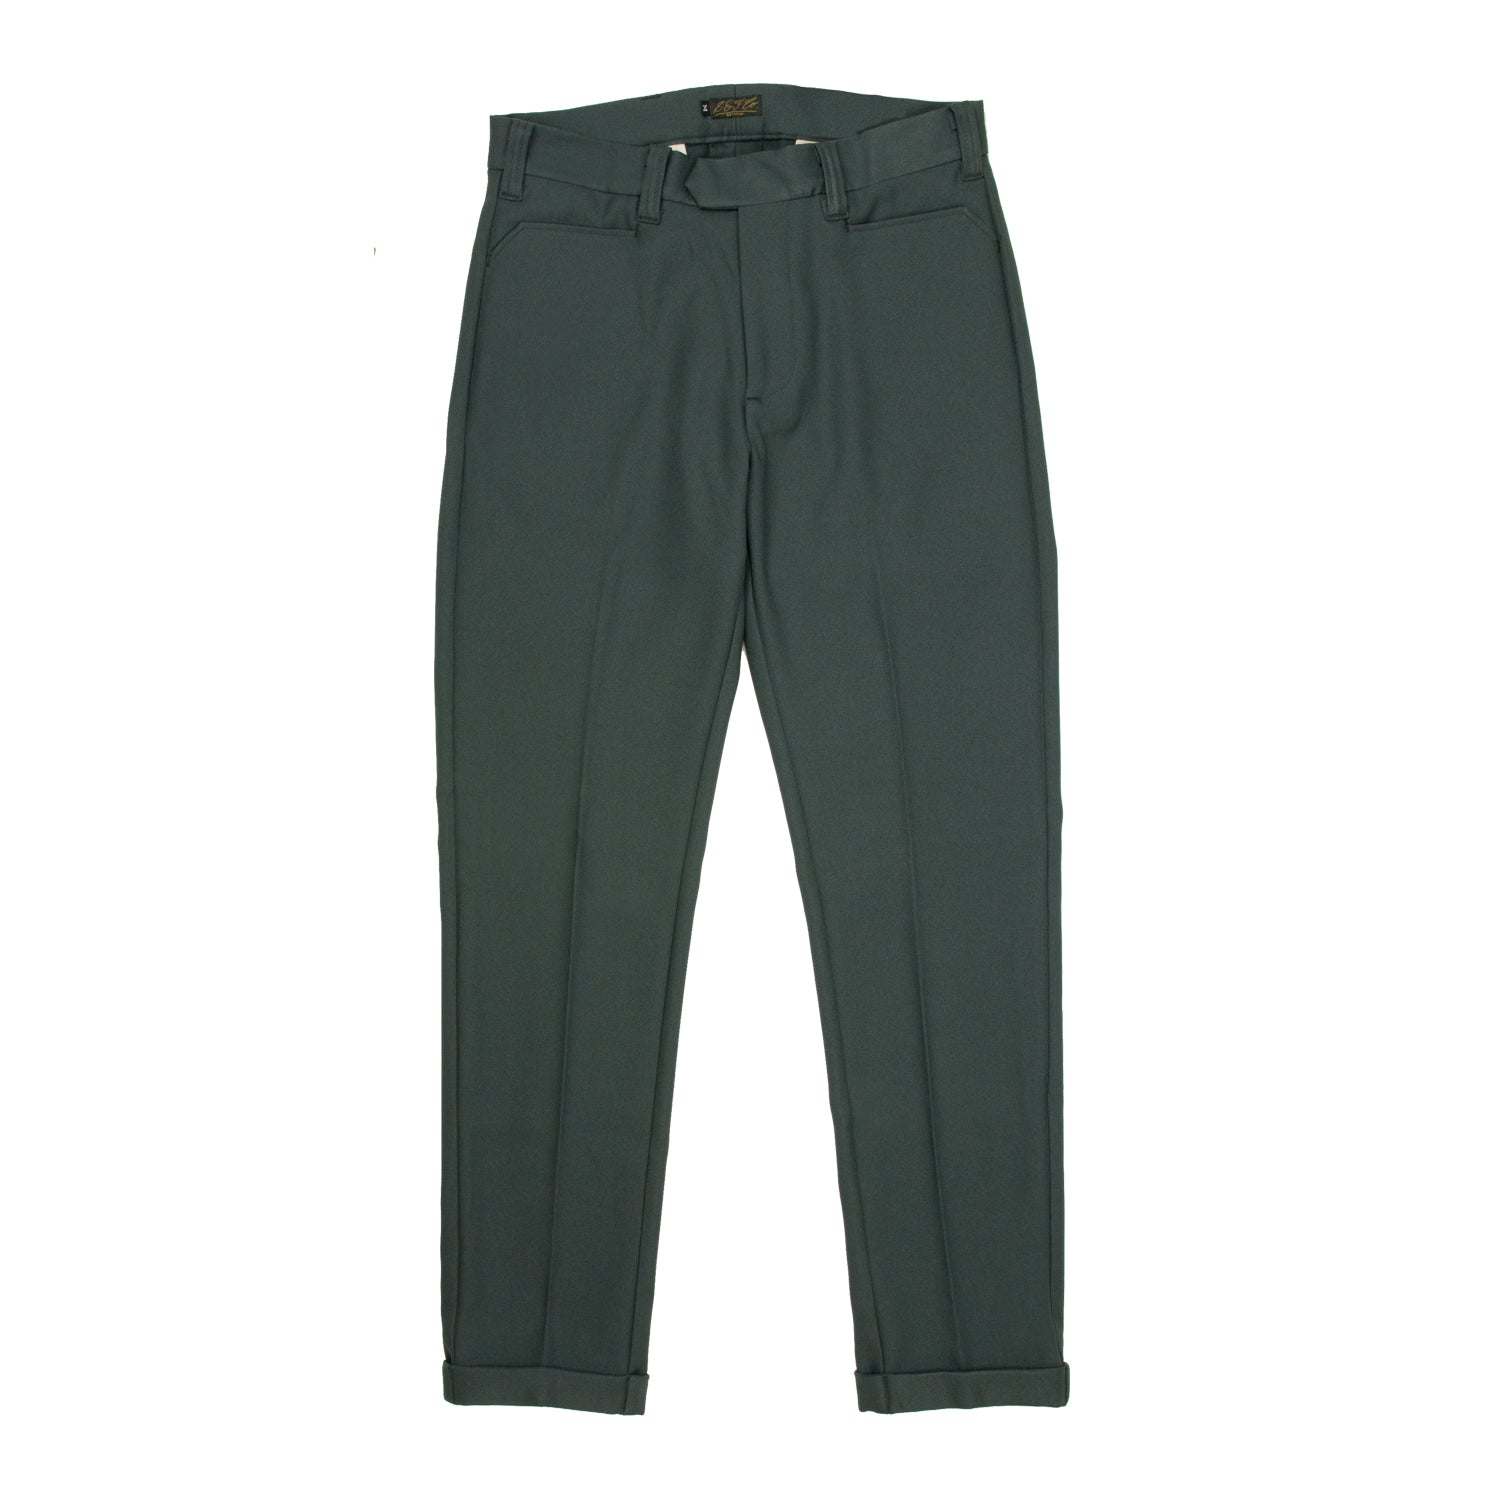 G&F Co.- ATHLETIC TROUSER_BLUE GRAY